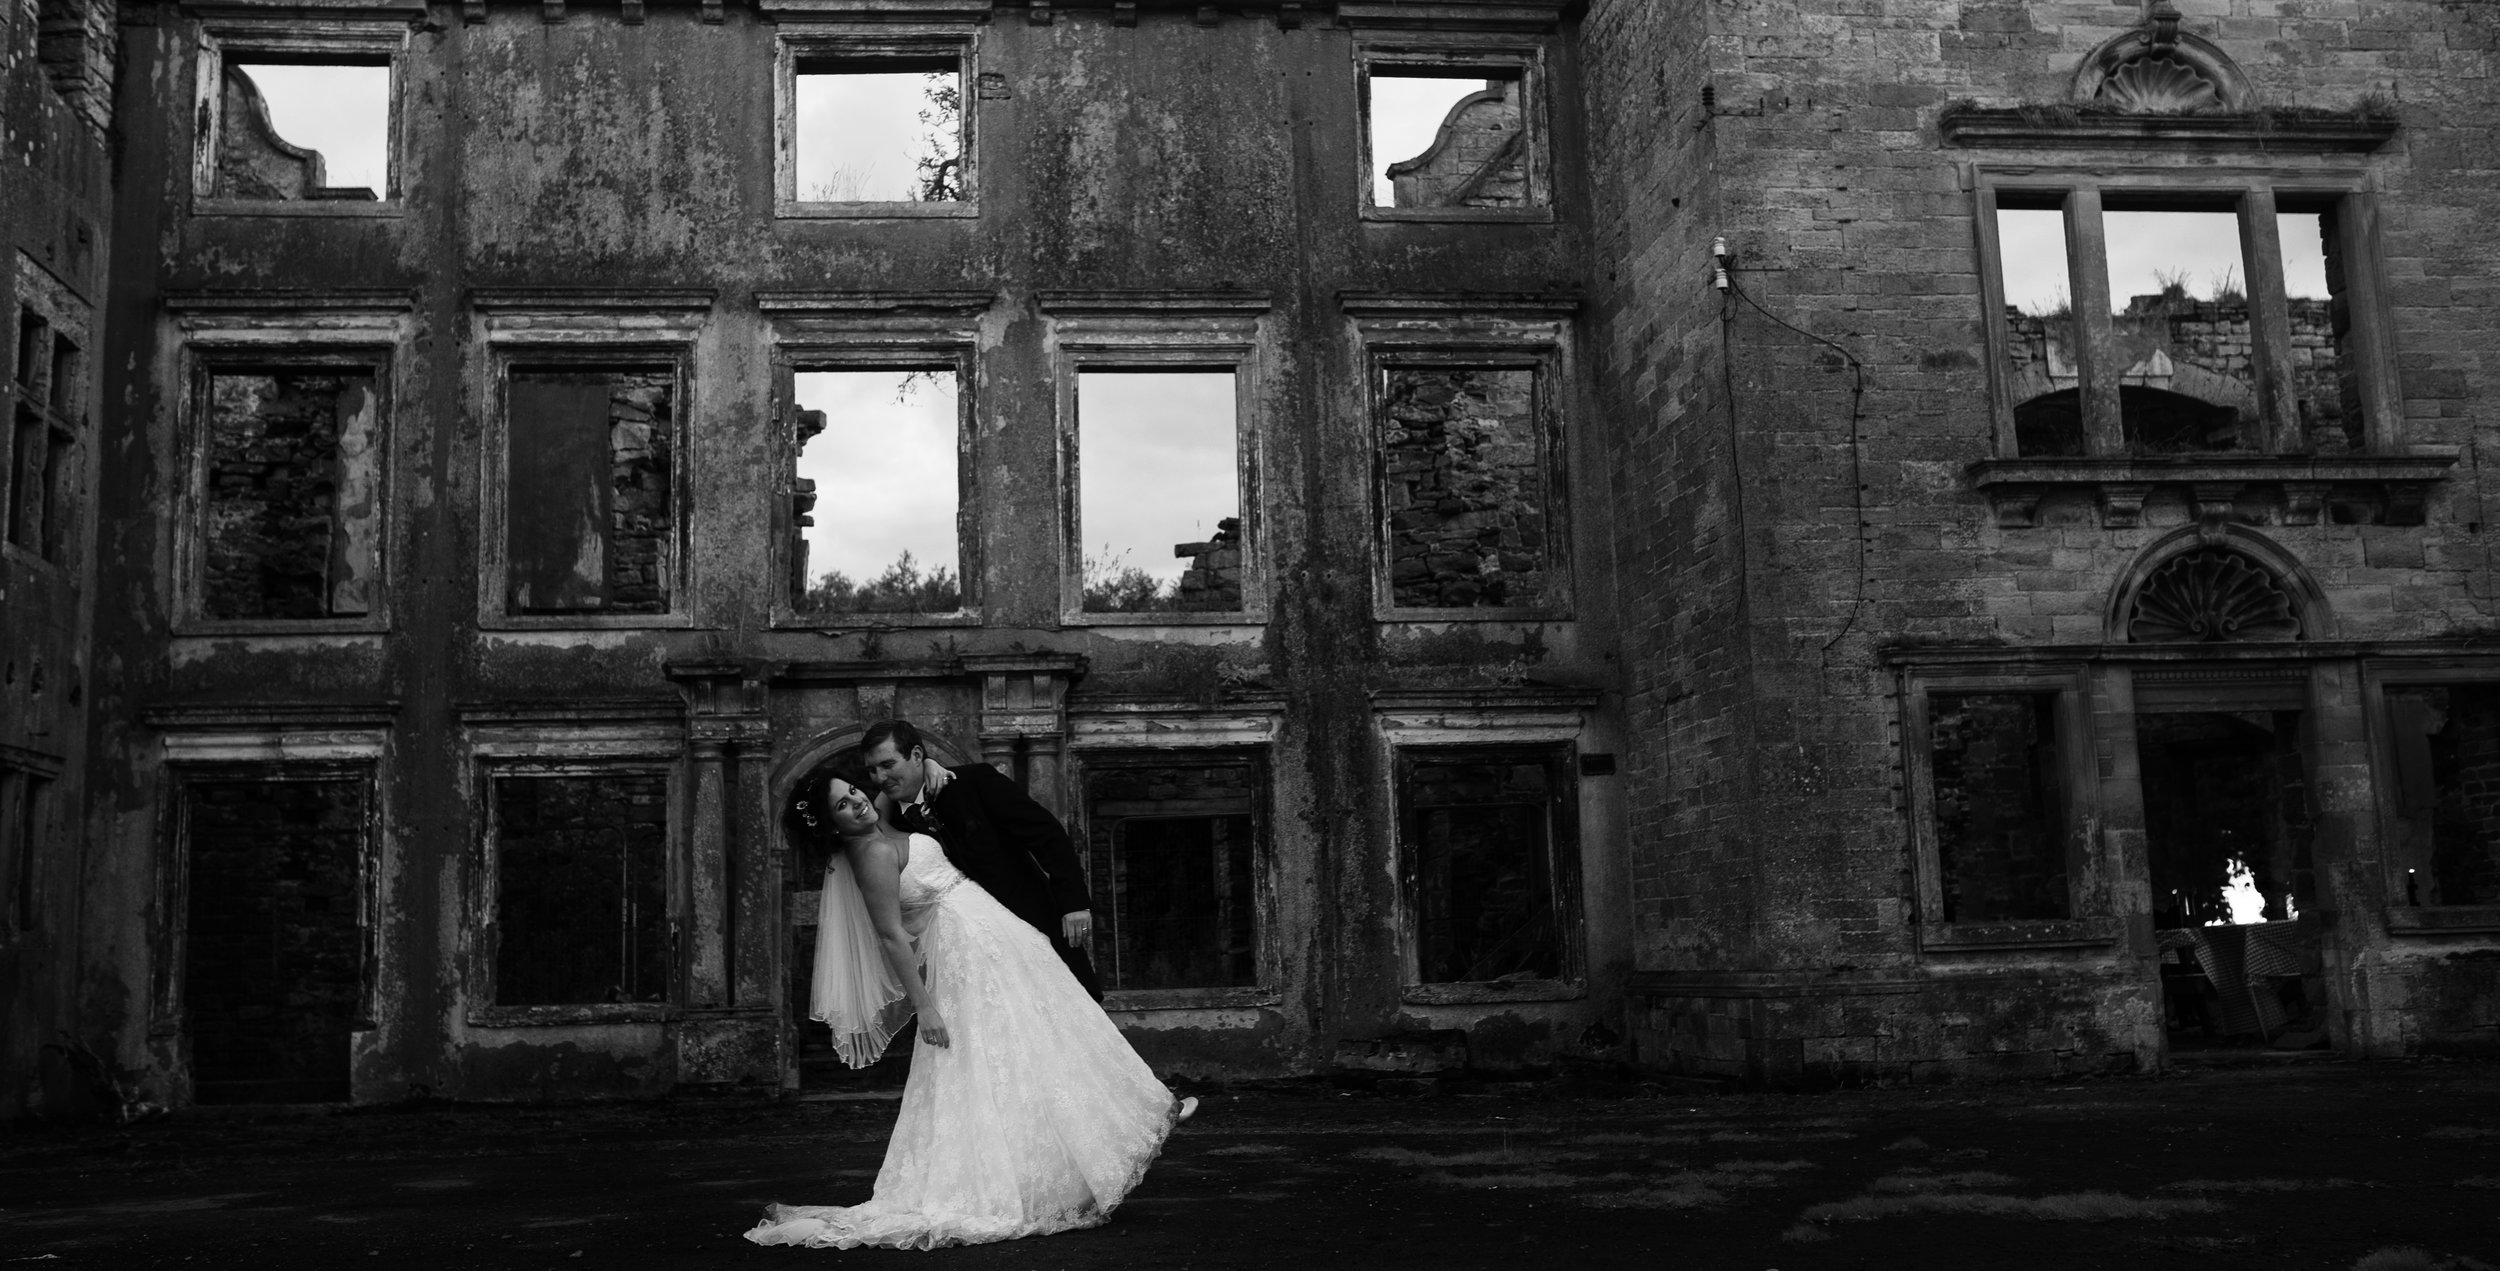 The bride and groom black and white portrait with the building in the background